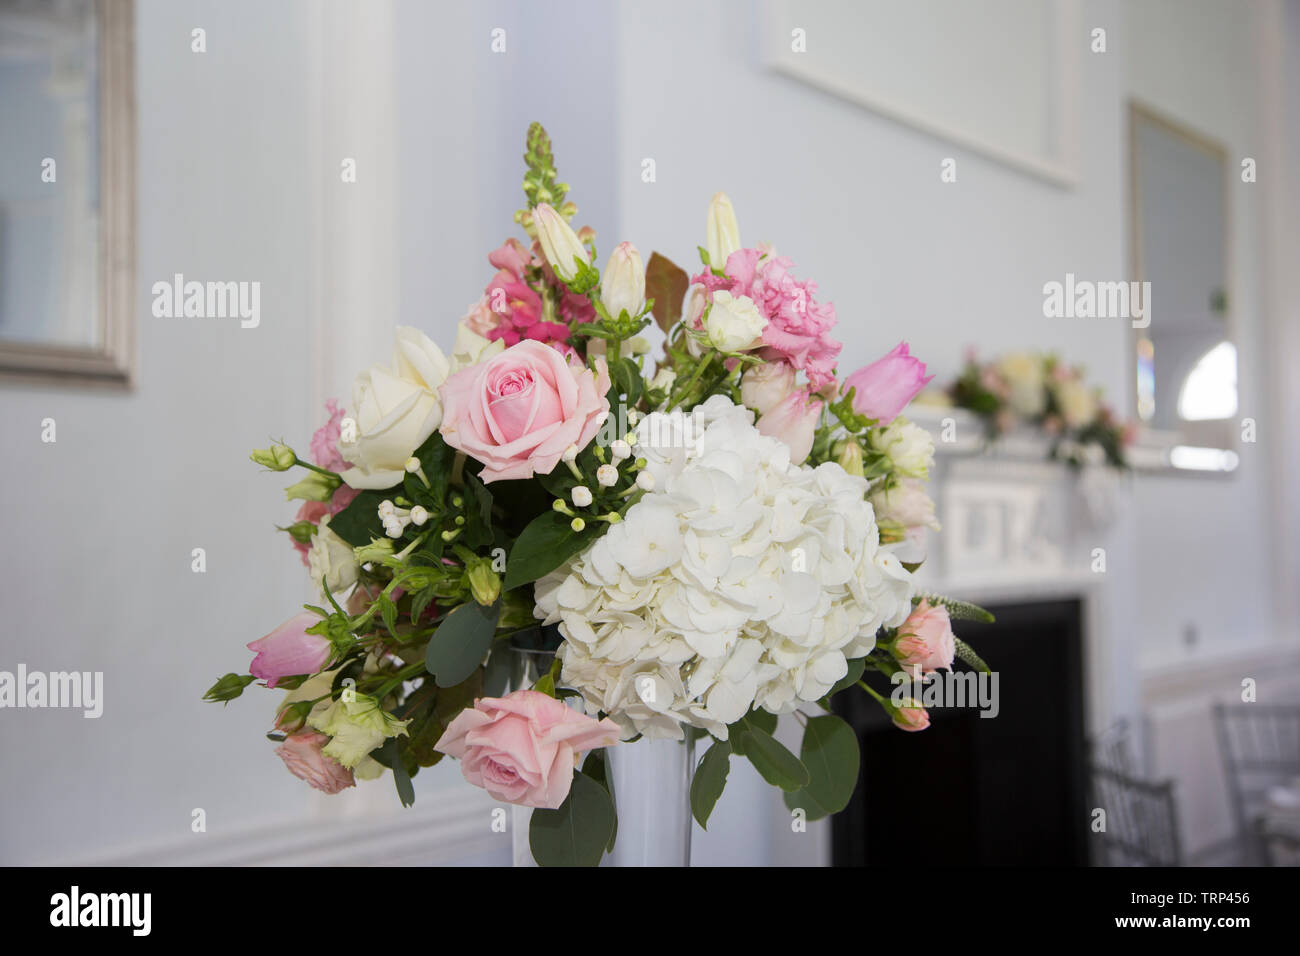 Wedding Flower Arrangements On Table High Resolution Stock Photography And Images Alamy